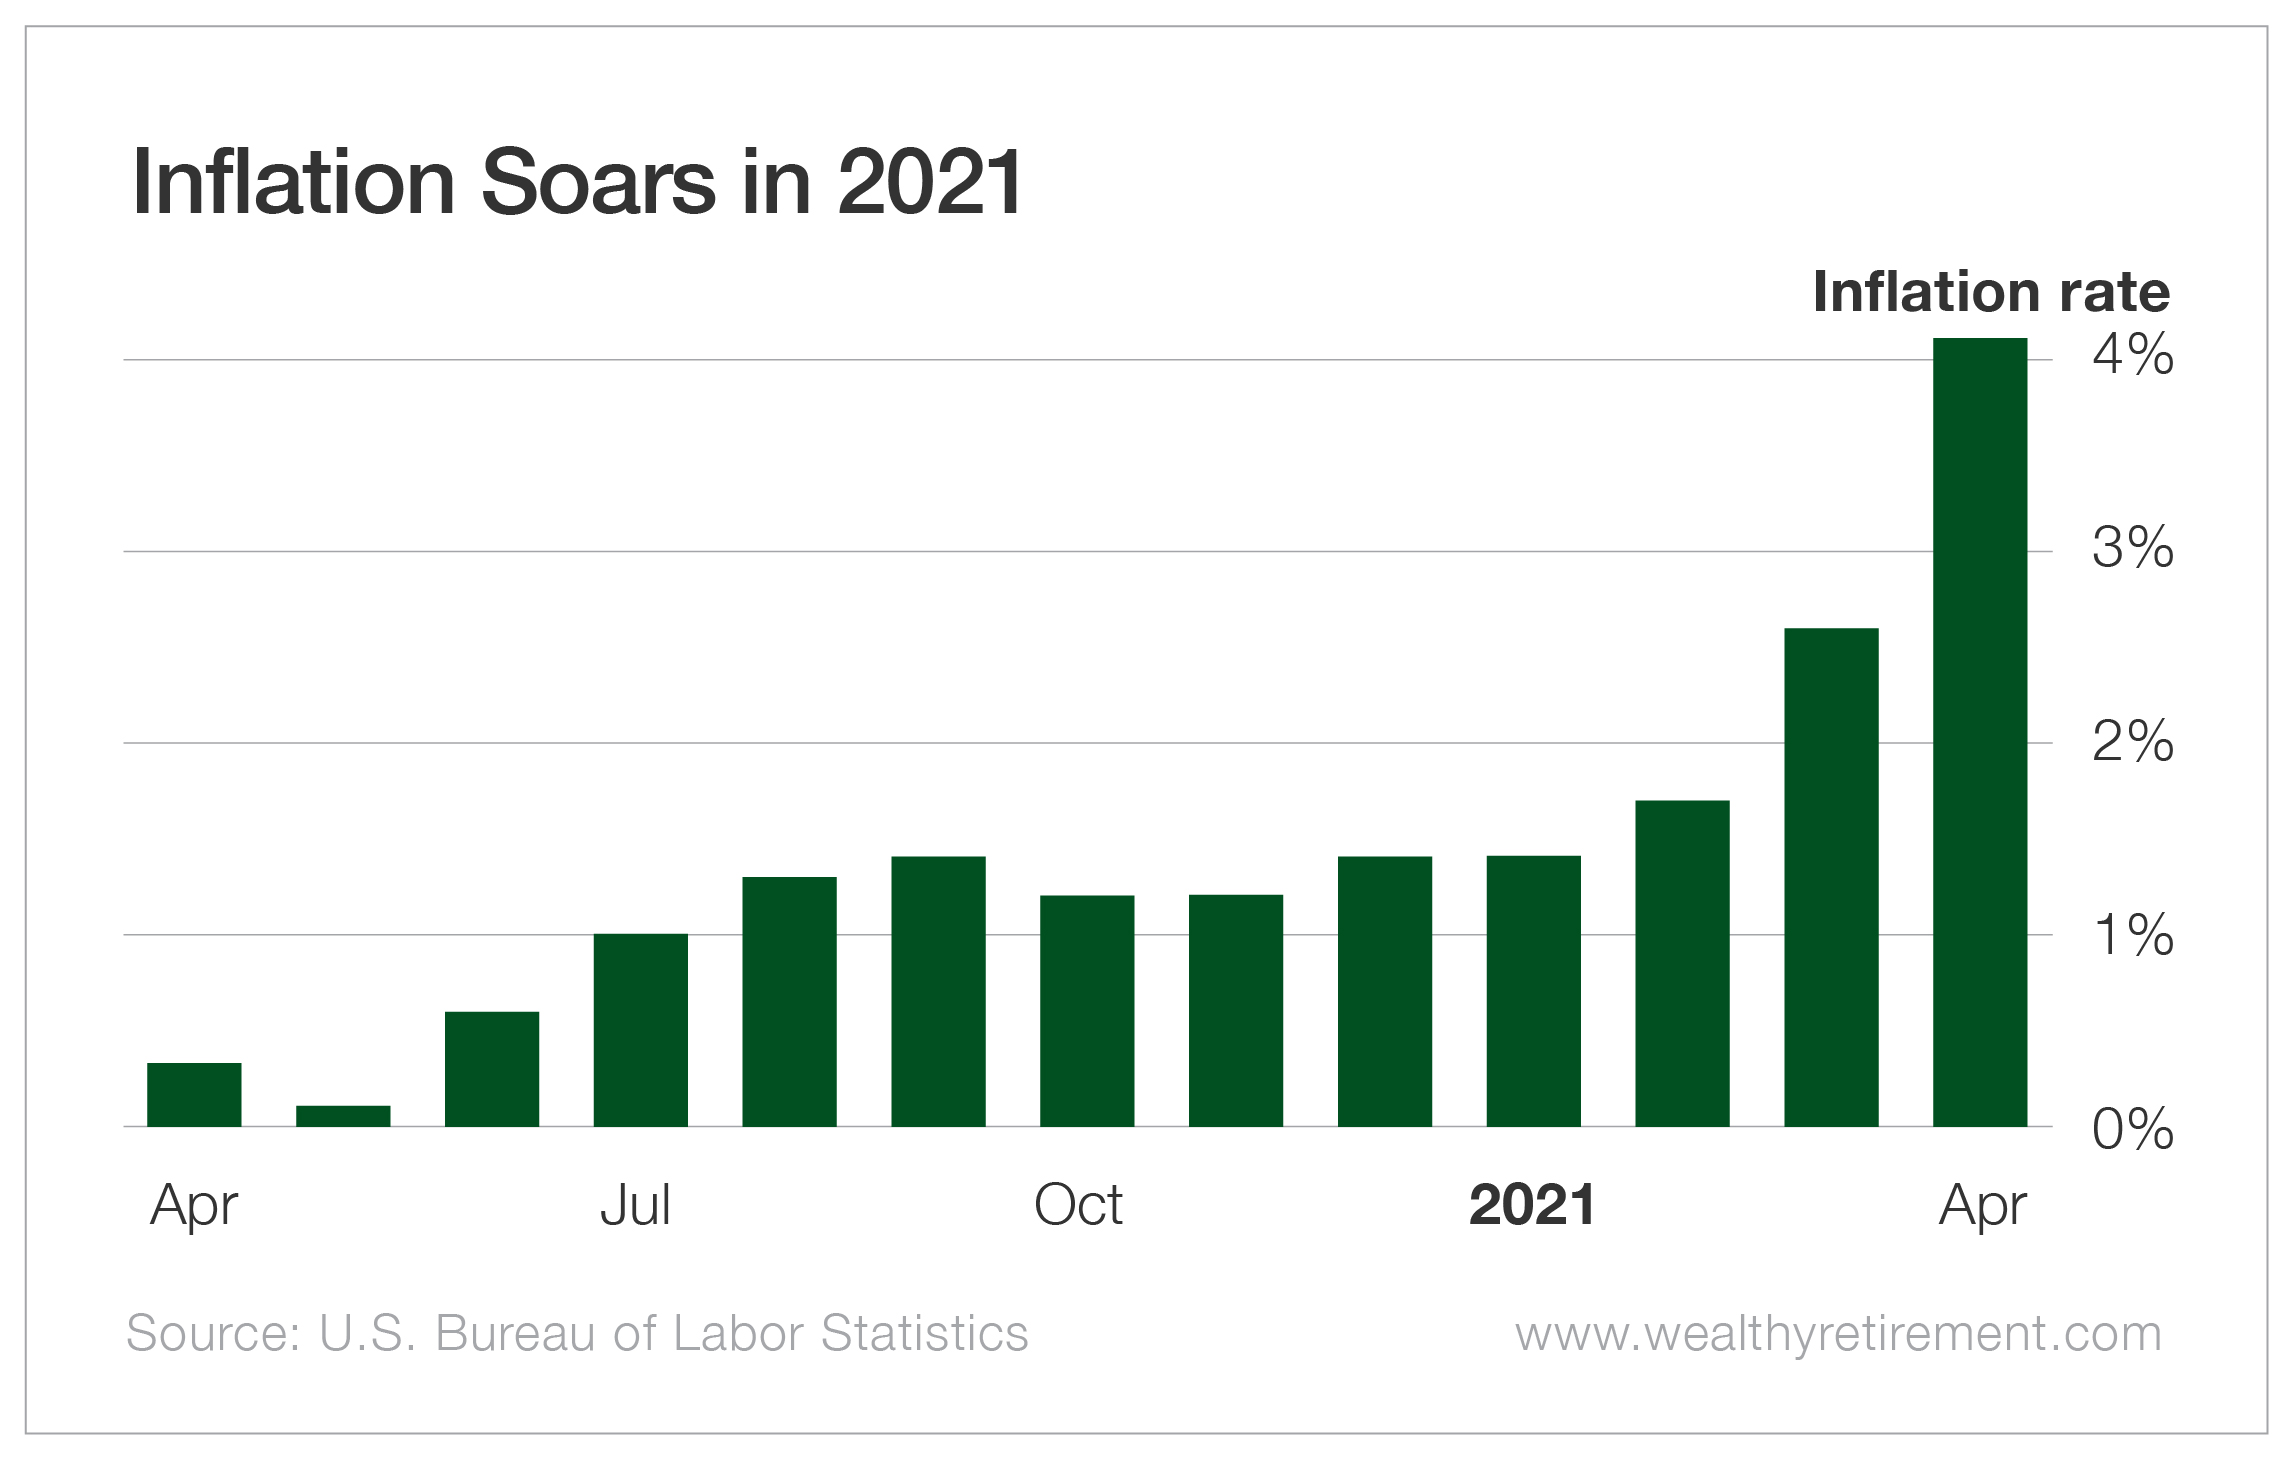 Inflation Soars in 2021